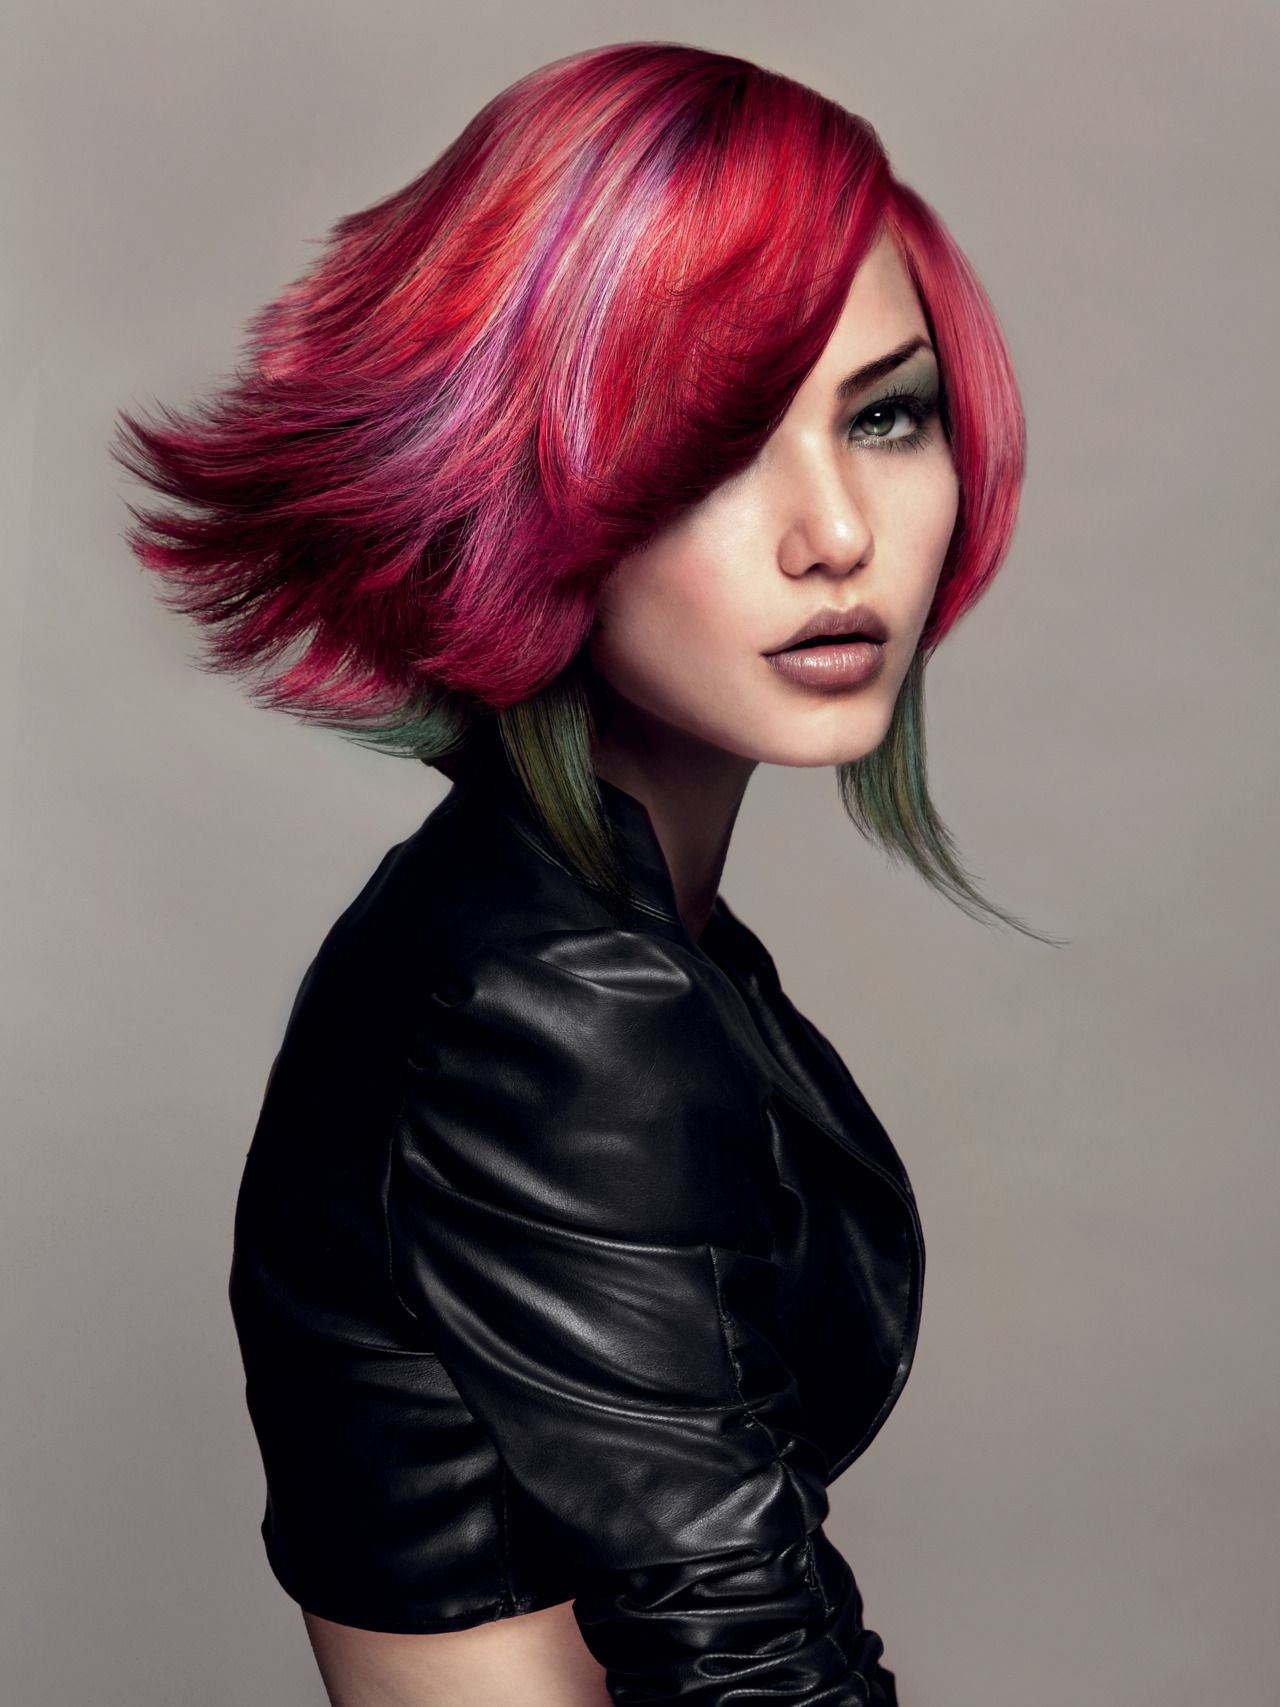 #coloredhair #trend #fashion #beauty